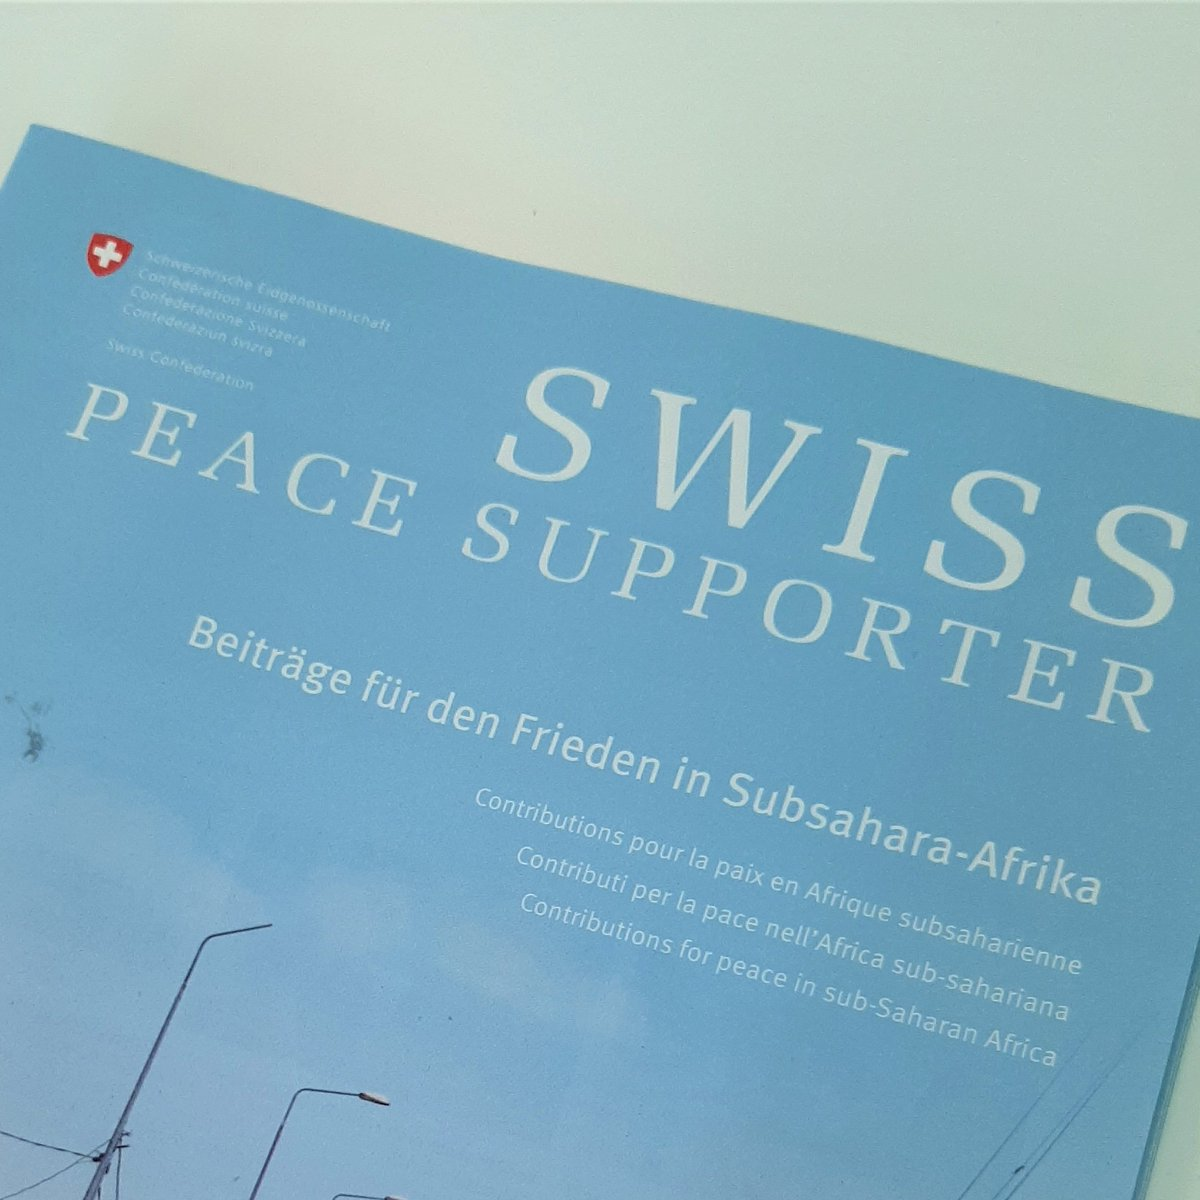 A real pleasure to be featured in the #SwissPeaceSupporter for our 20th anniversary. A bit about our work in Sub-Saharan Africa and supporting the #UN and #multilateralism for better #SSG #SSR     Get a cup of tea and spend a little time with us today   >> https://t.co/KLykLxqlun https://t.co/p3uZaBMKNC